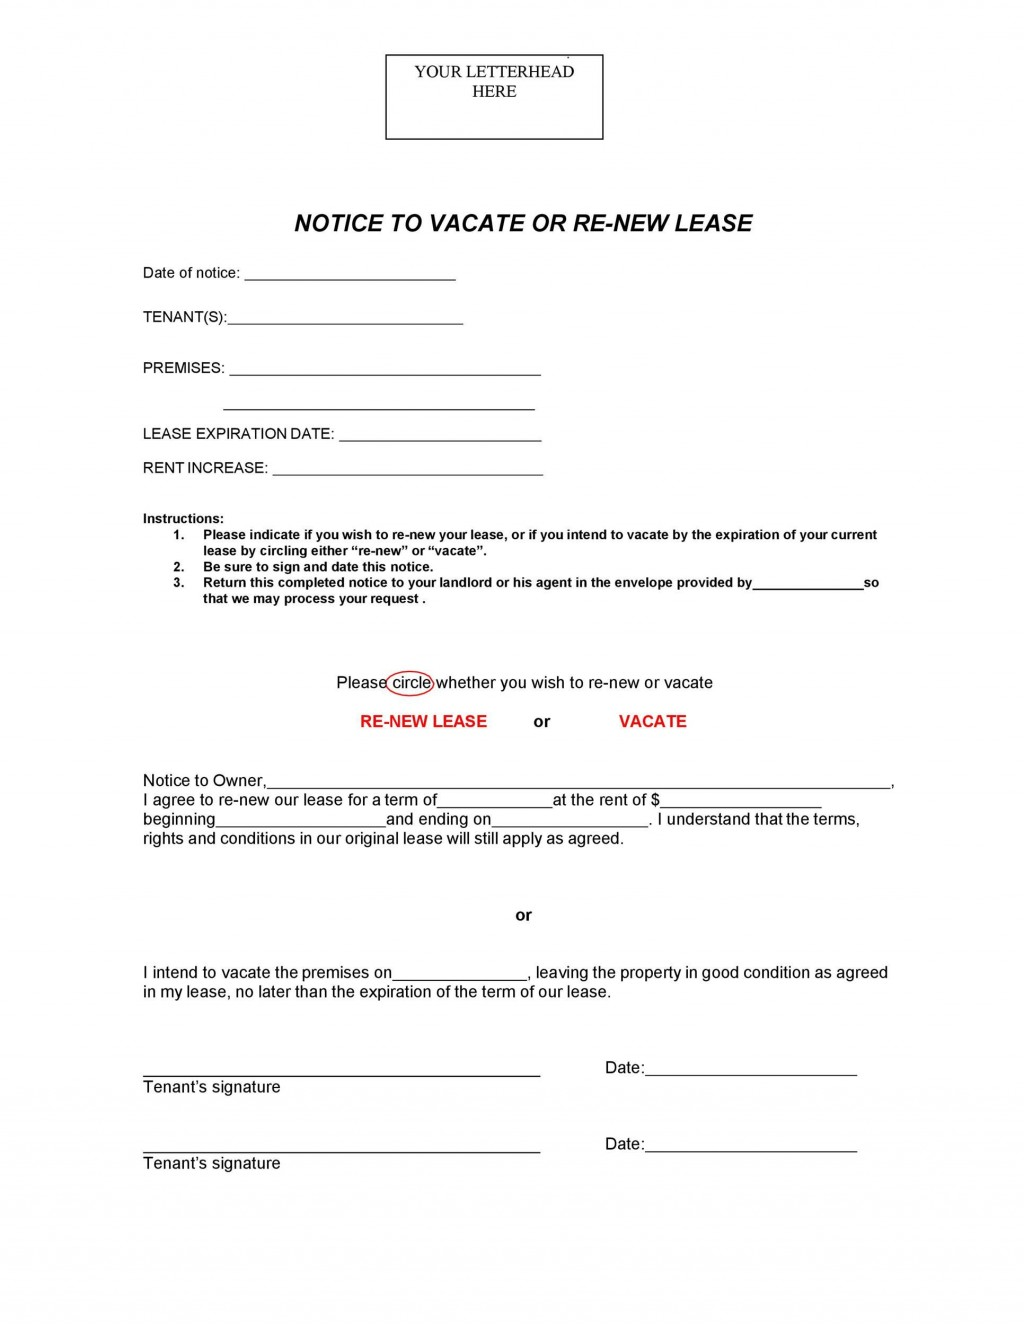 008 Marvelou Renter Lease Agreement Template Highest Quality  Apartment Form Early Termination Of By Tenant South Africa FreeLarge